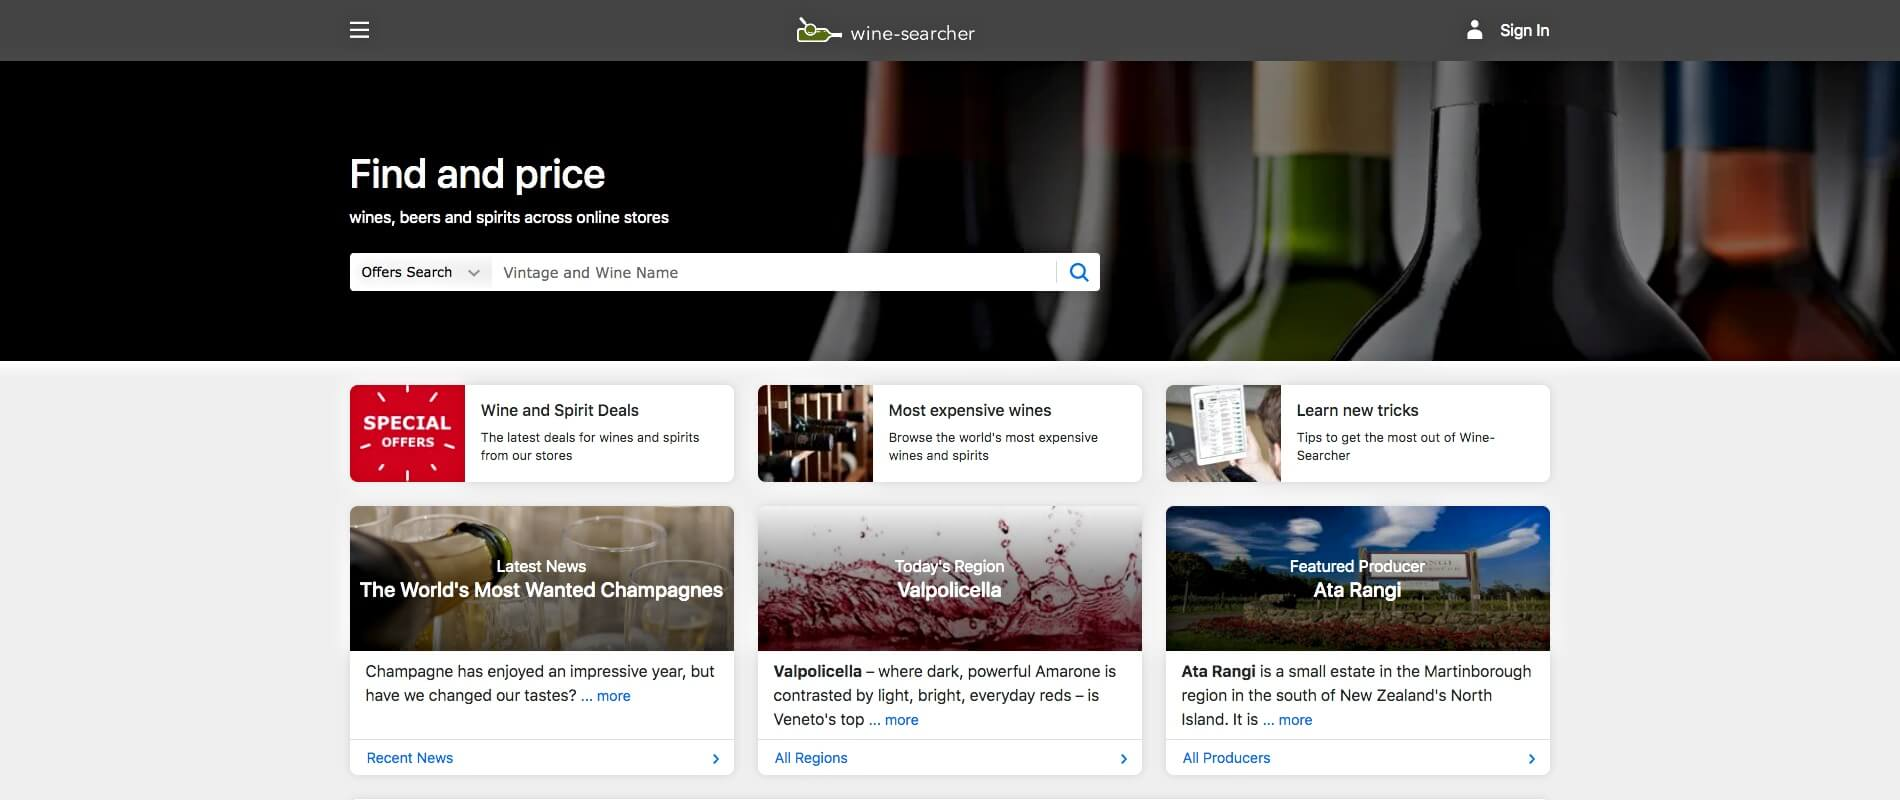 Wine-searcher to sell wine online